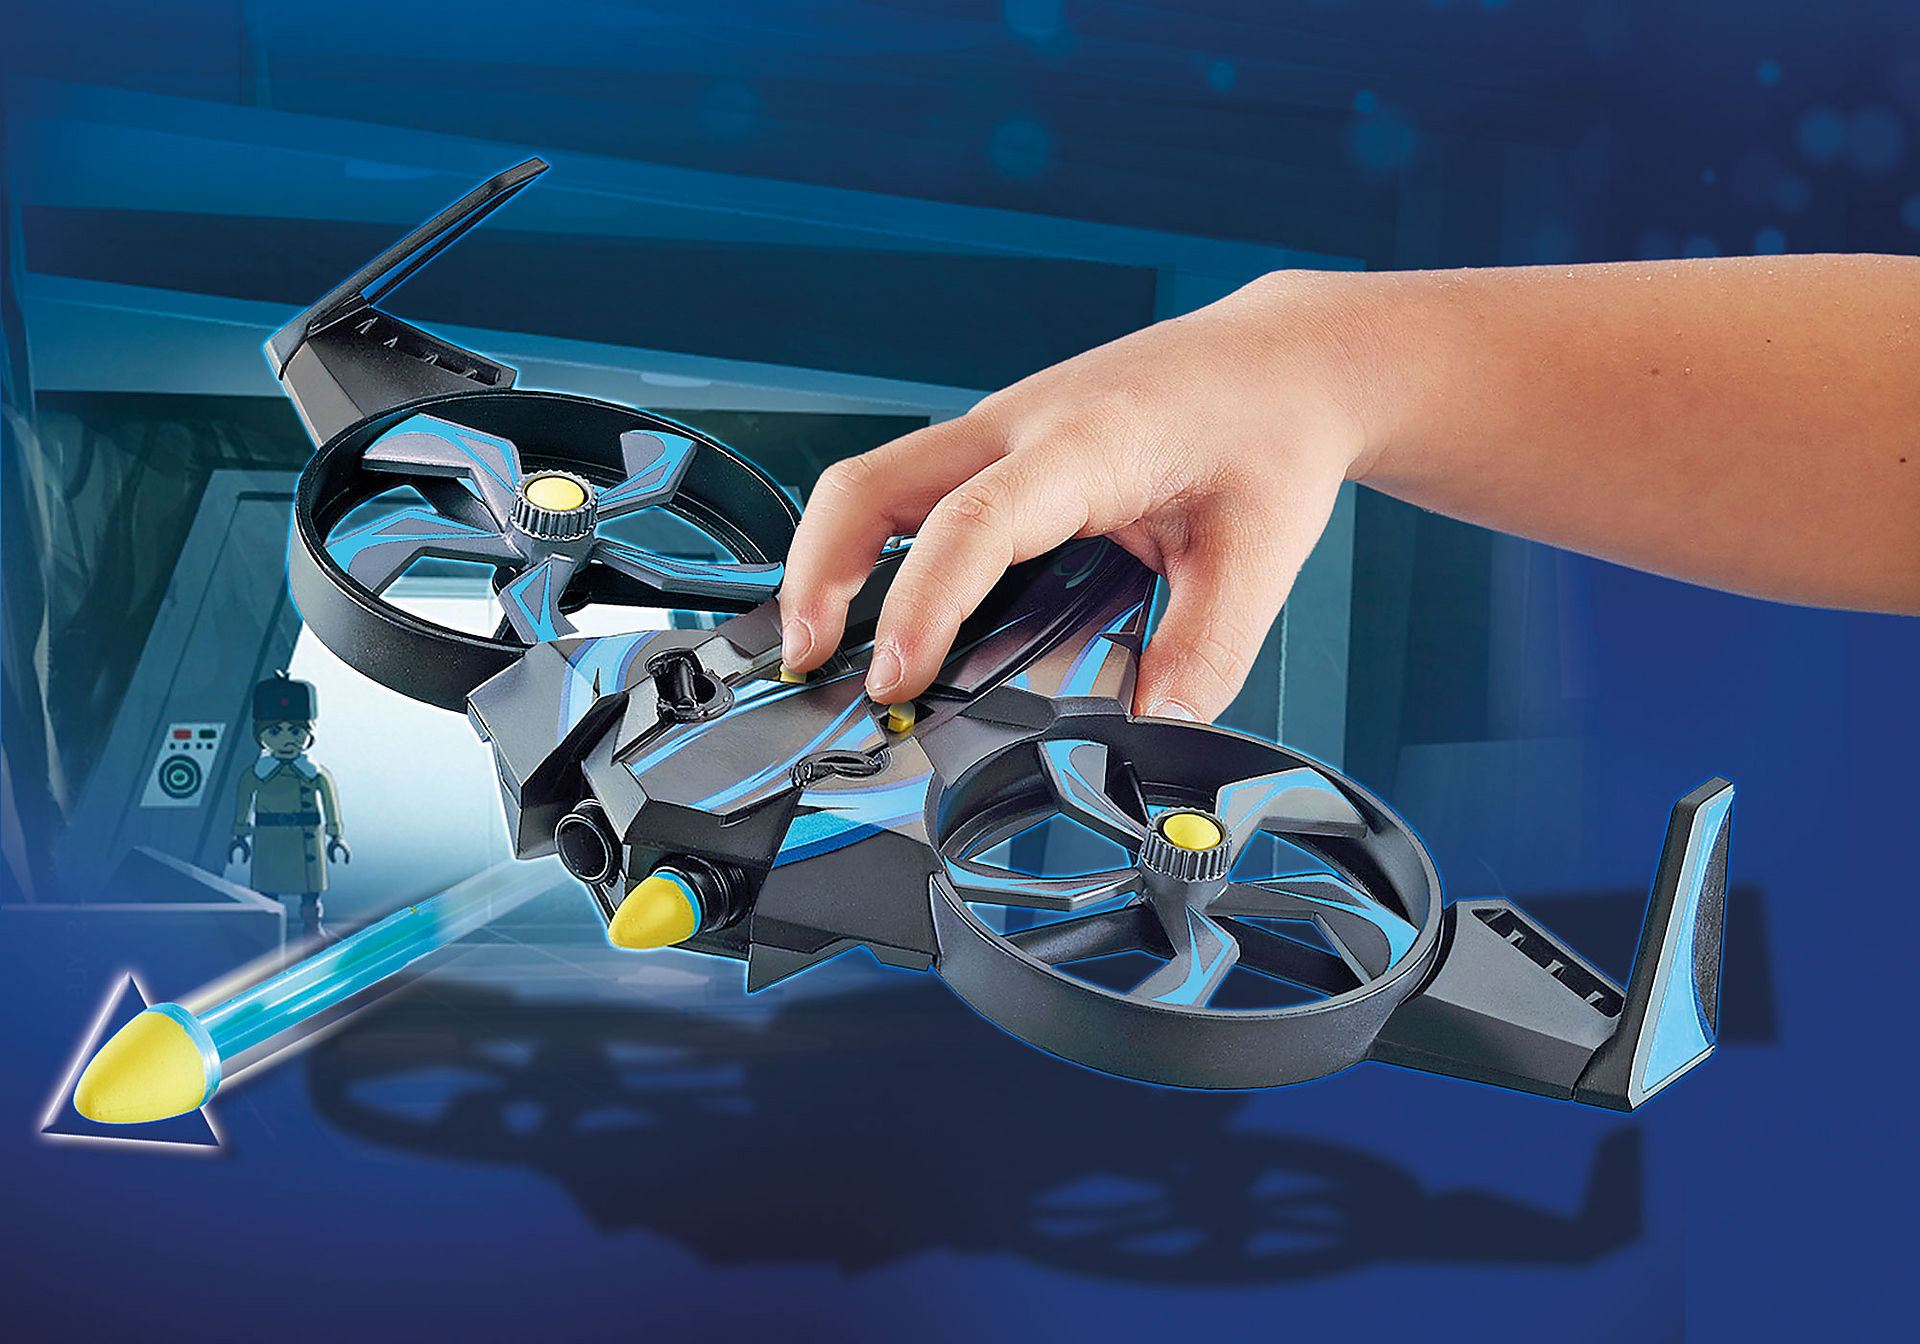 http://media.playmobil.com/i/playmobil/70071_product_extra1/PLAYMOBIL: THE MOVIE Robotitron con Dron